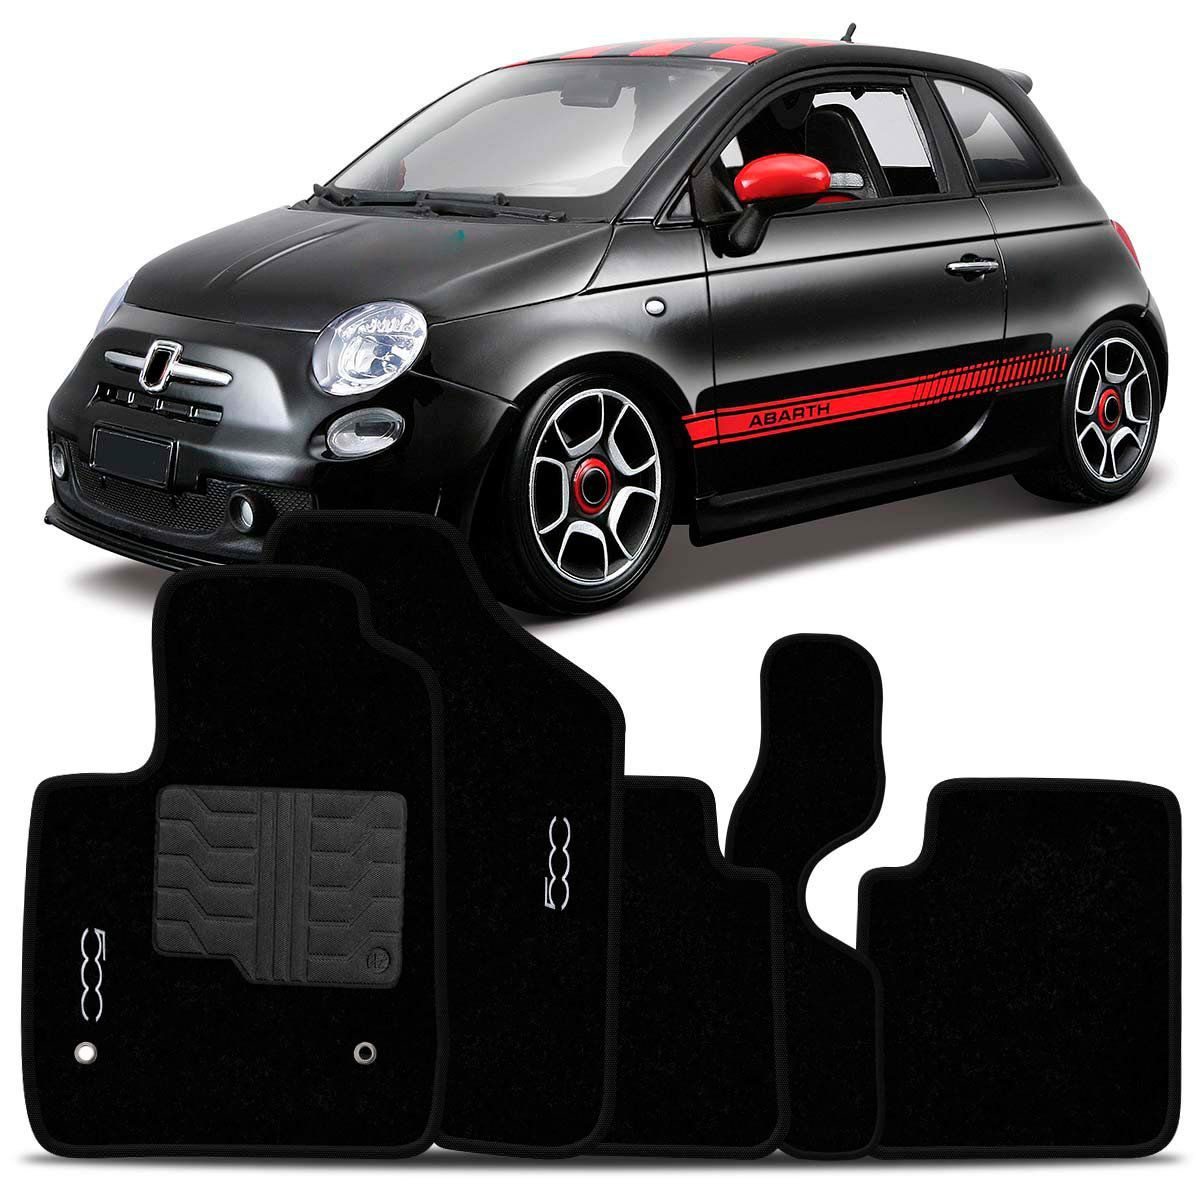 Tapete Carpete Fiat 500 Abarth 2010 2011 2012 2013 2014 2015 Preto